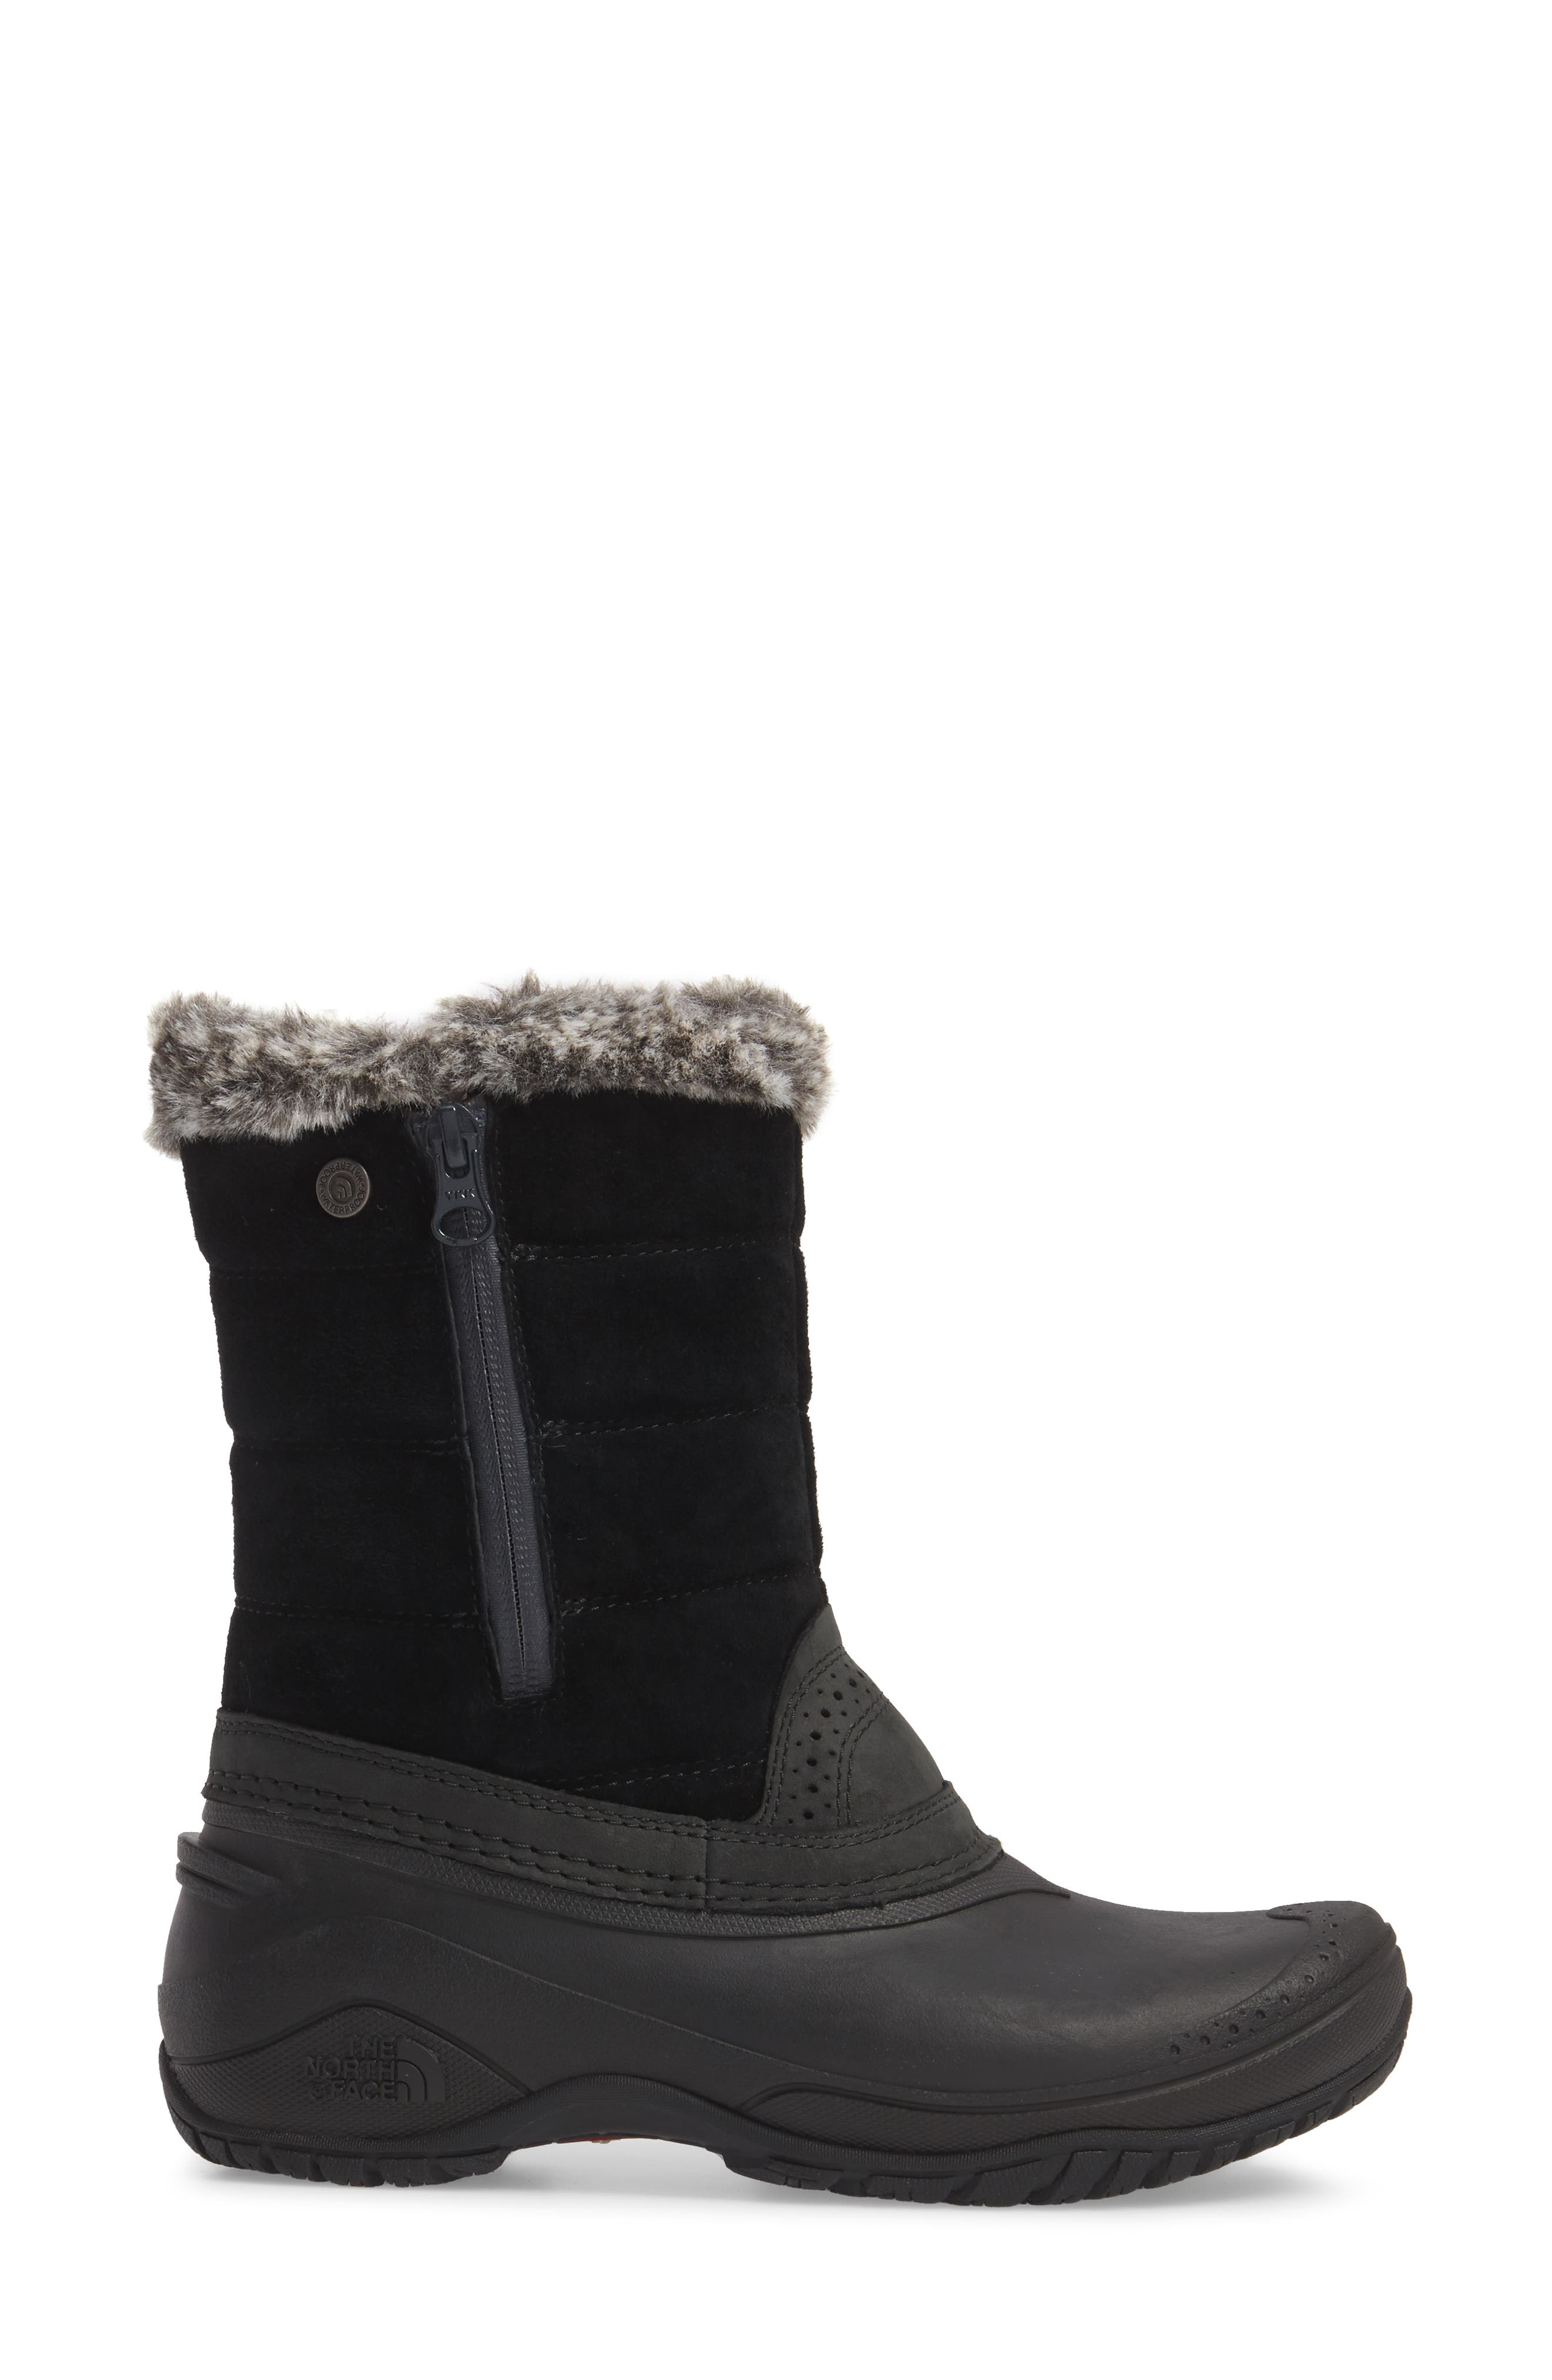 THE NORTH FACE,                             Shellista III Waterproof Pull-On Snow Boot,                             Alternate thumbnail 3, color,                             001